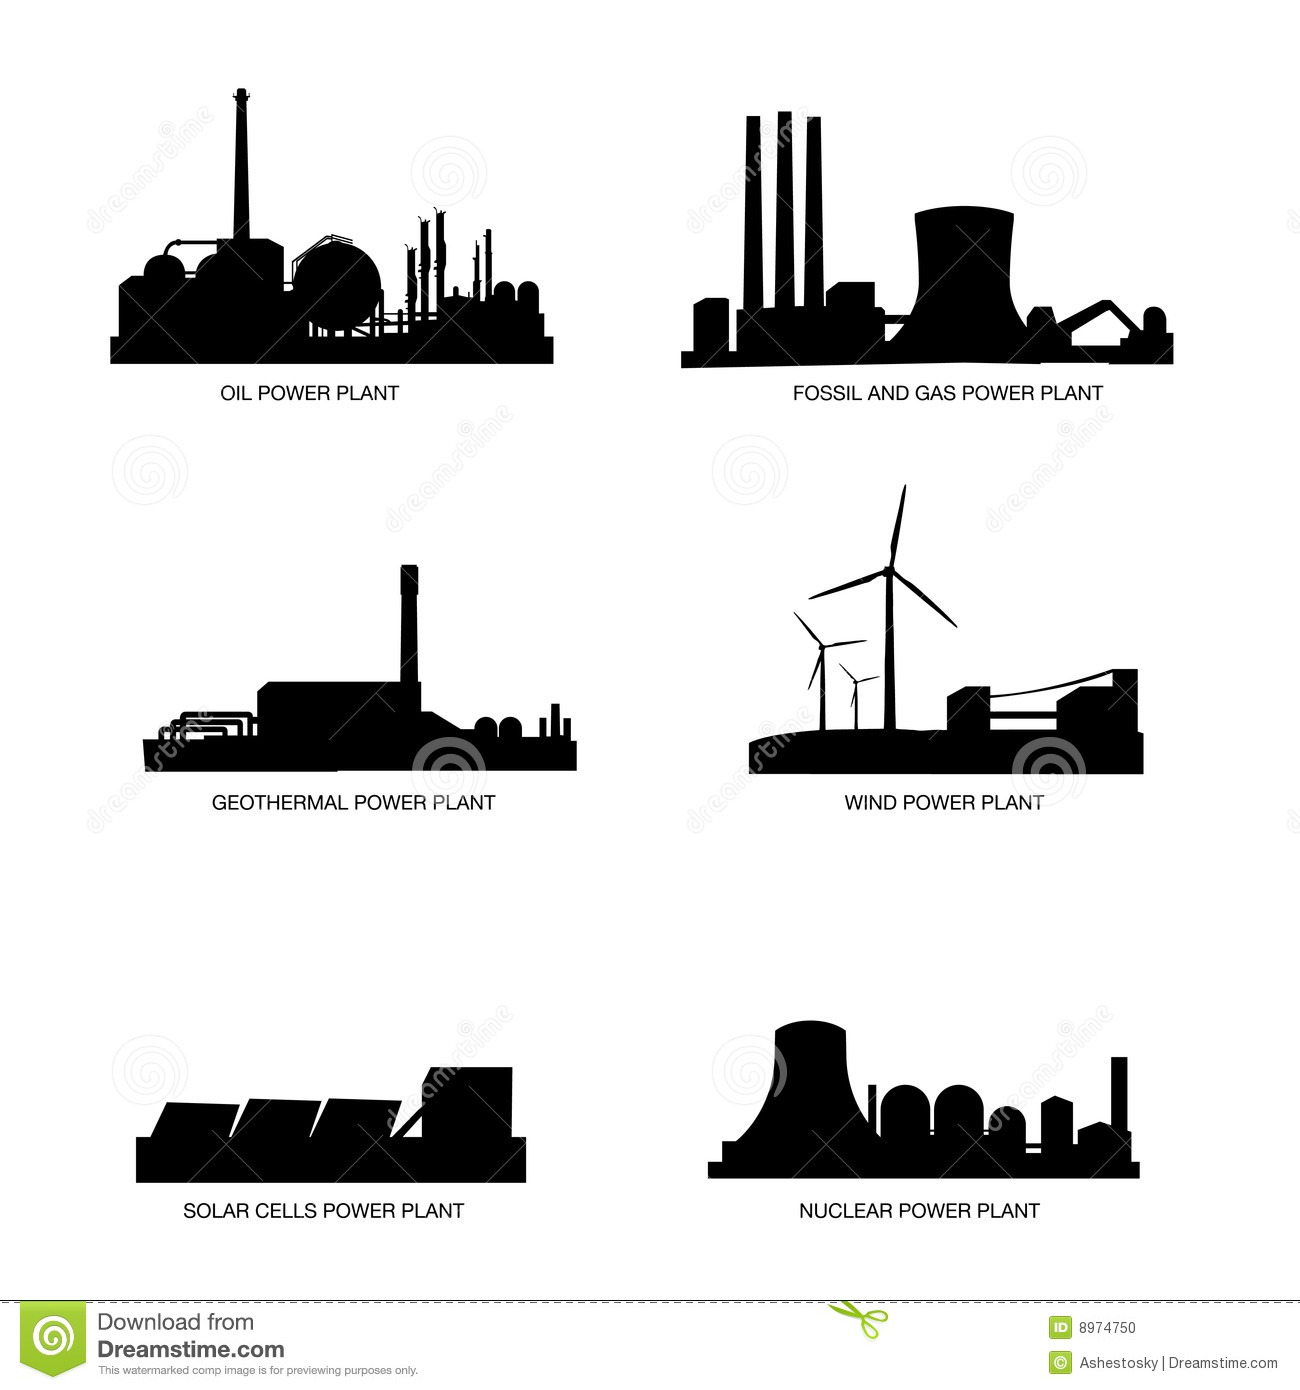 ... power, fossil and gas, geothermal, wind power, sun cells power and